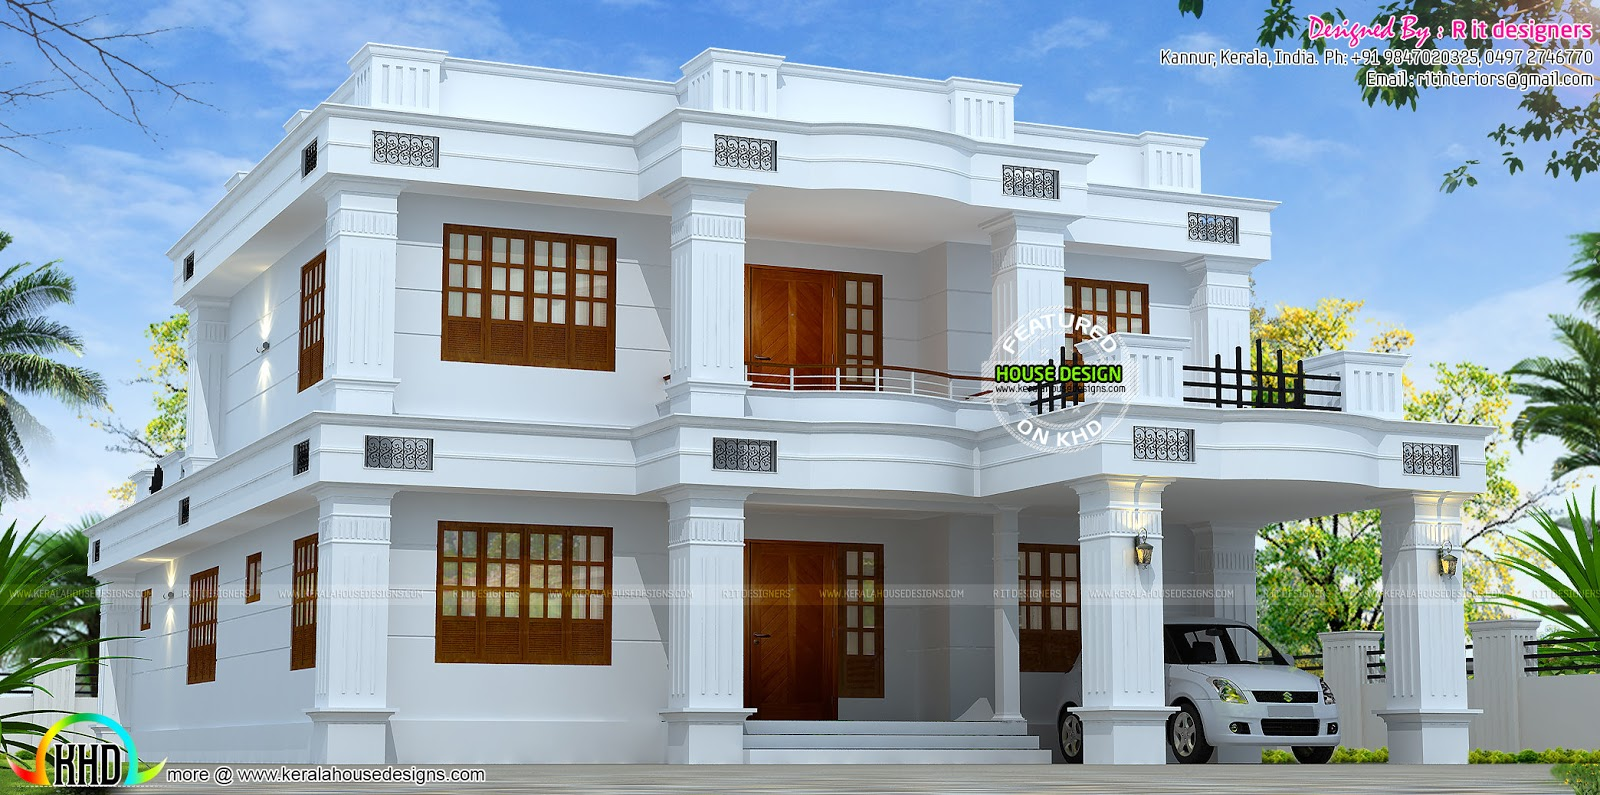 february 2016 kerala home design and floor plans - Home Design Blogspot